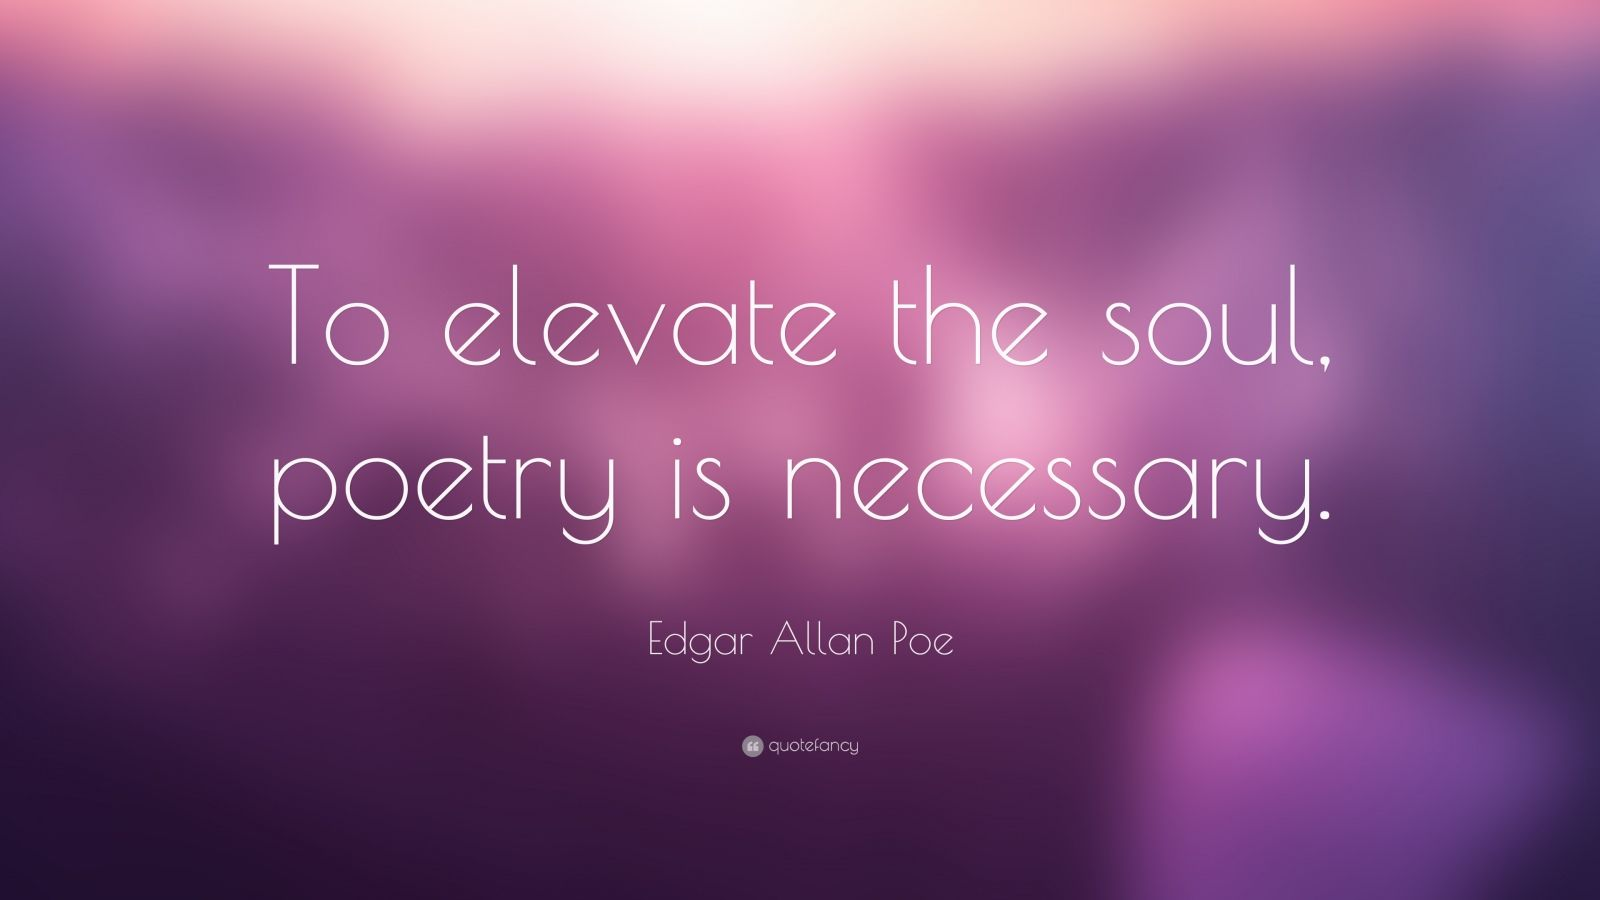 edgar allan poe quotes  45 wallpapers